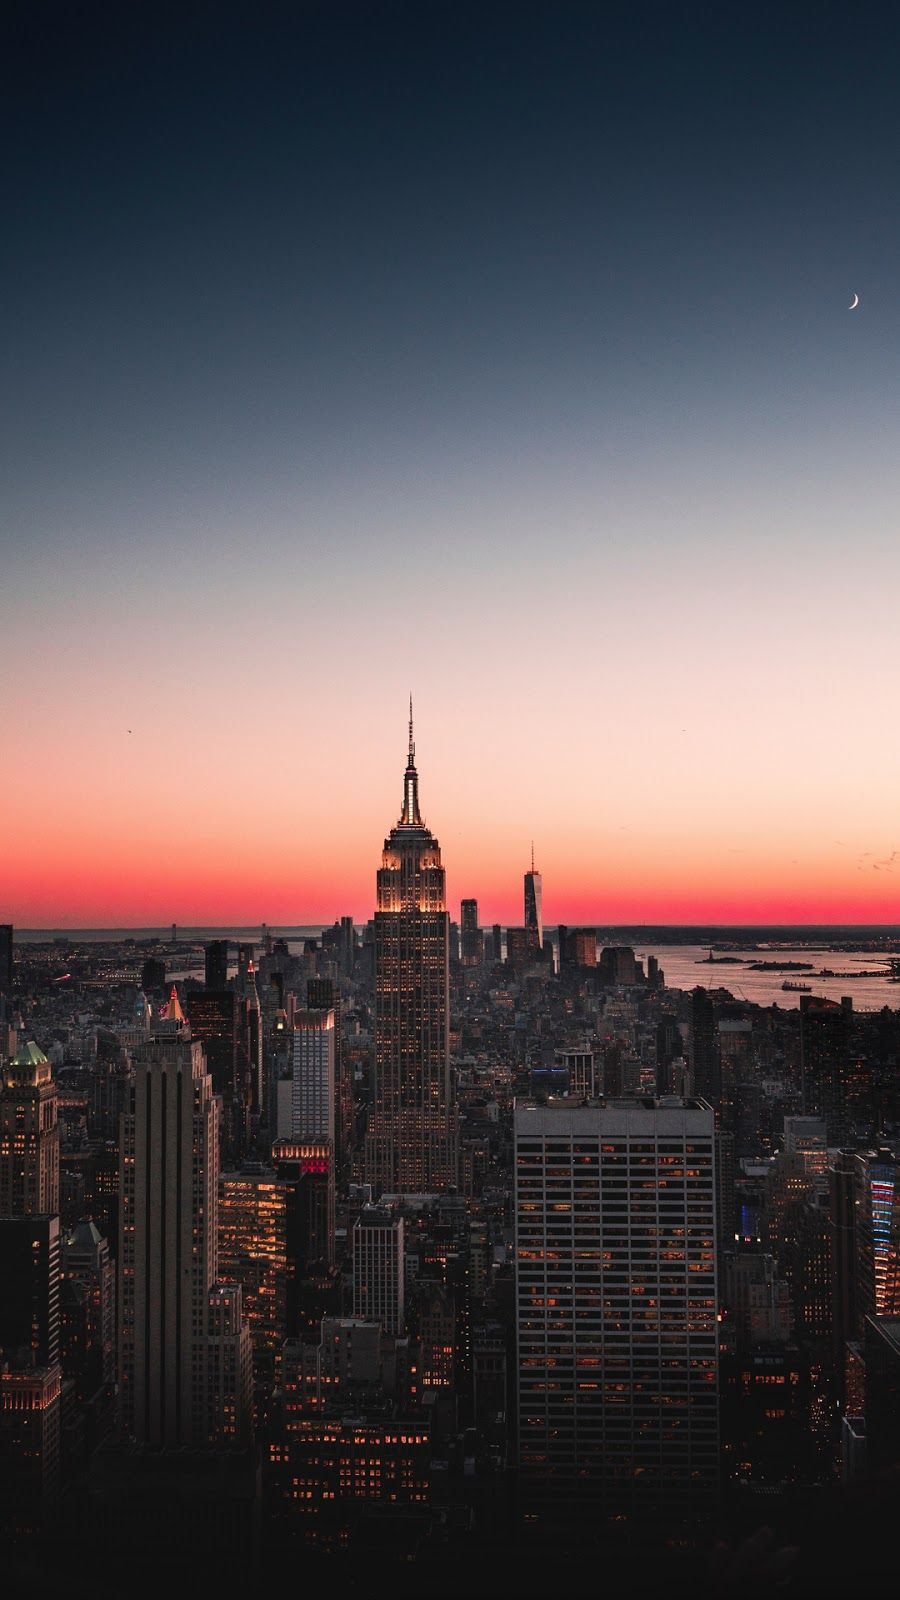 After The Sunset Wallpaper Iphone Android New York Iphone Wallpaper City Iphone Wallpaper New York Wallpaper